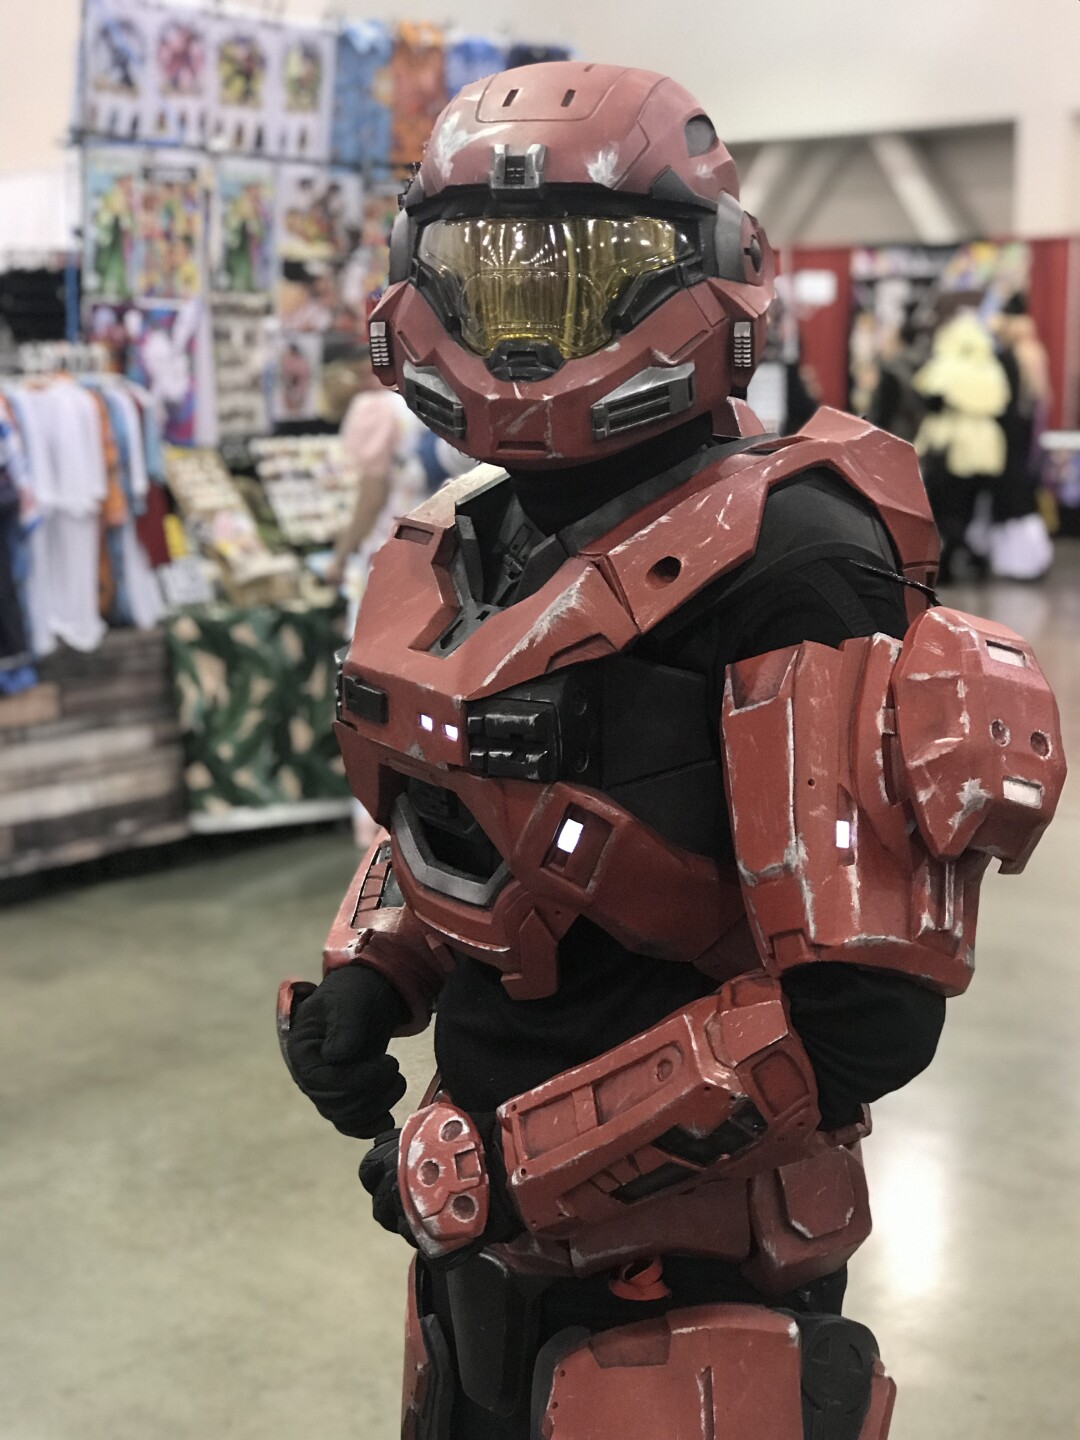 This cosplay outfit costs more than $3,000 the owner of it said.